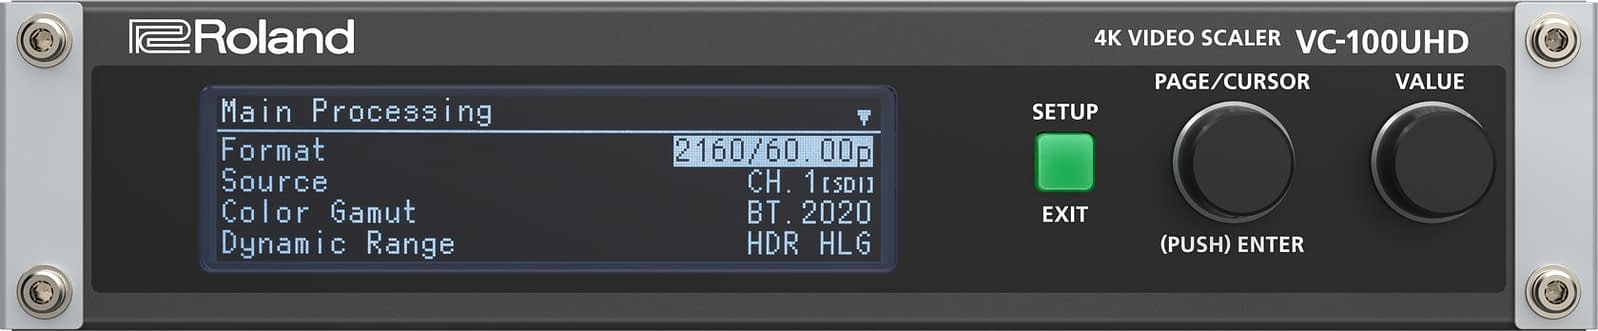 Roland VC-100UHD Front Panel